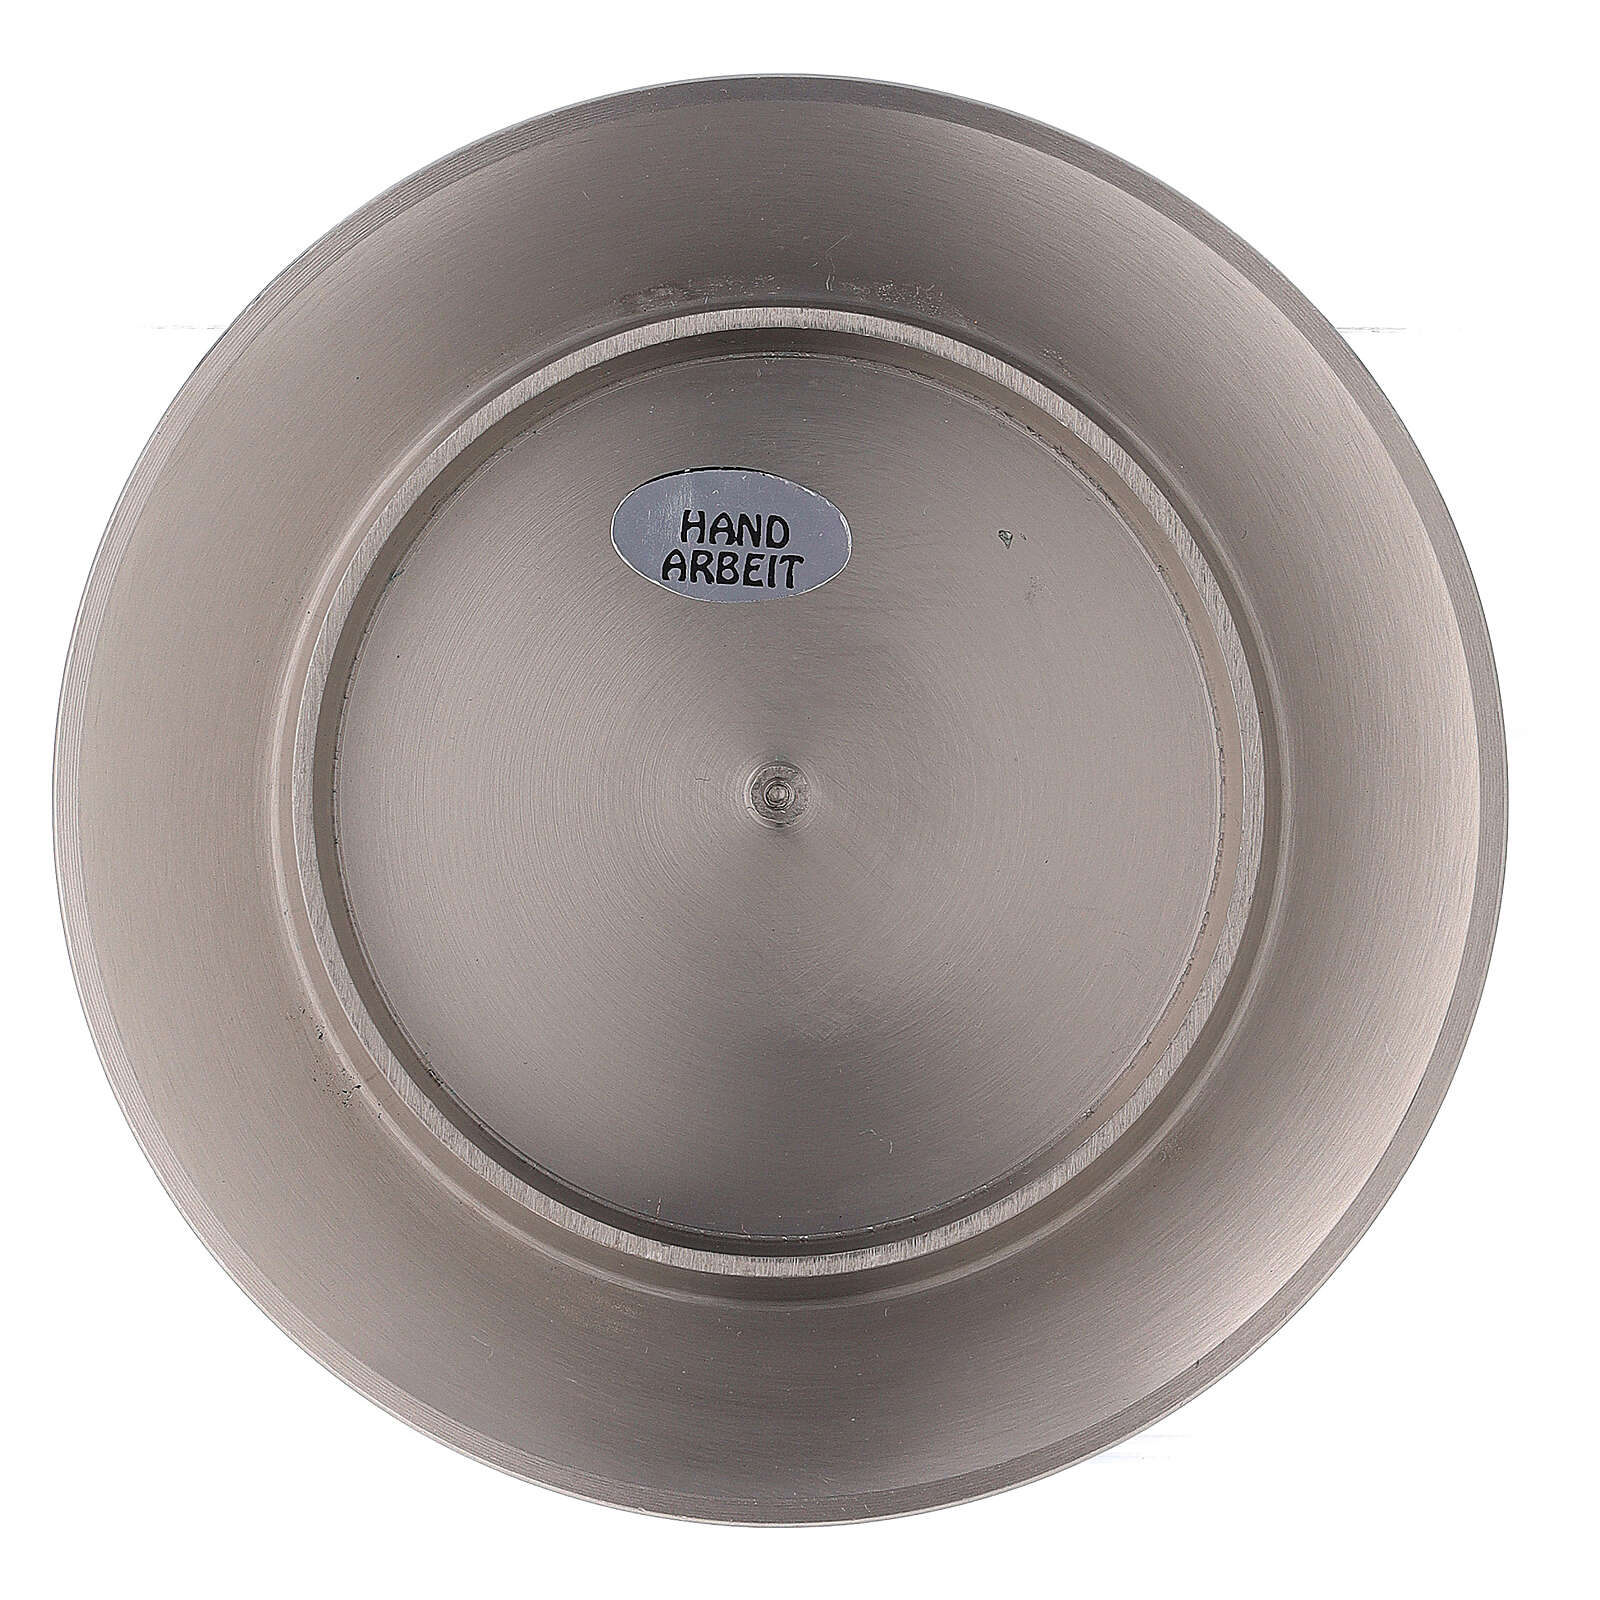 Circular candle holder of nickel-plated brass with satin finish 3 in 3